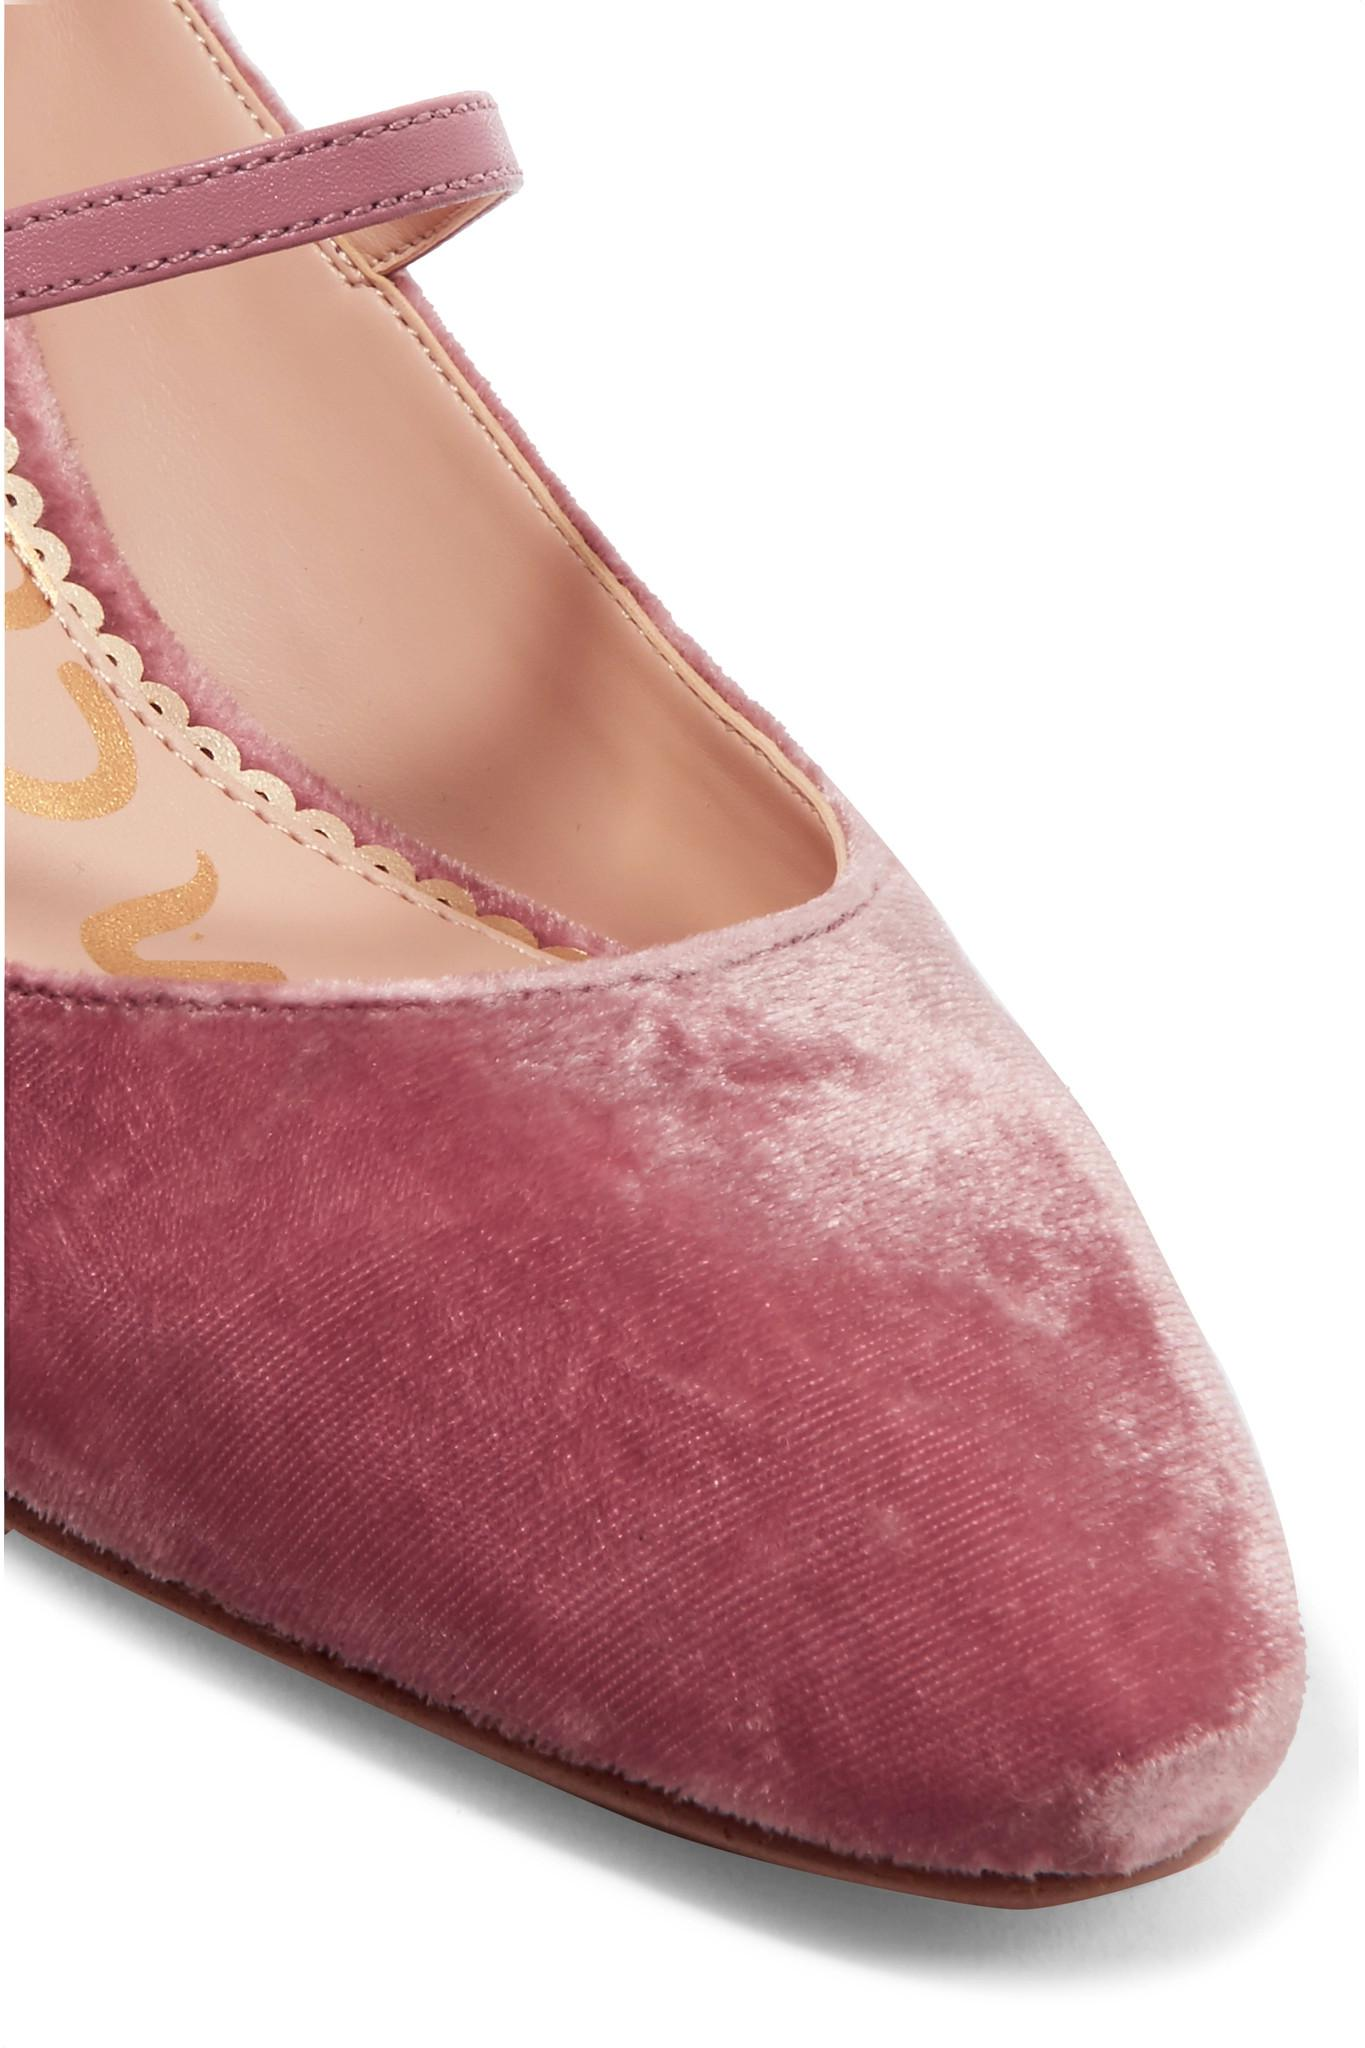 1926ec8762d3a Lyst - Sam Edelman Lulie Leather-trimmed Velvet Pumps in Pink